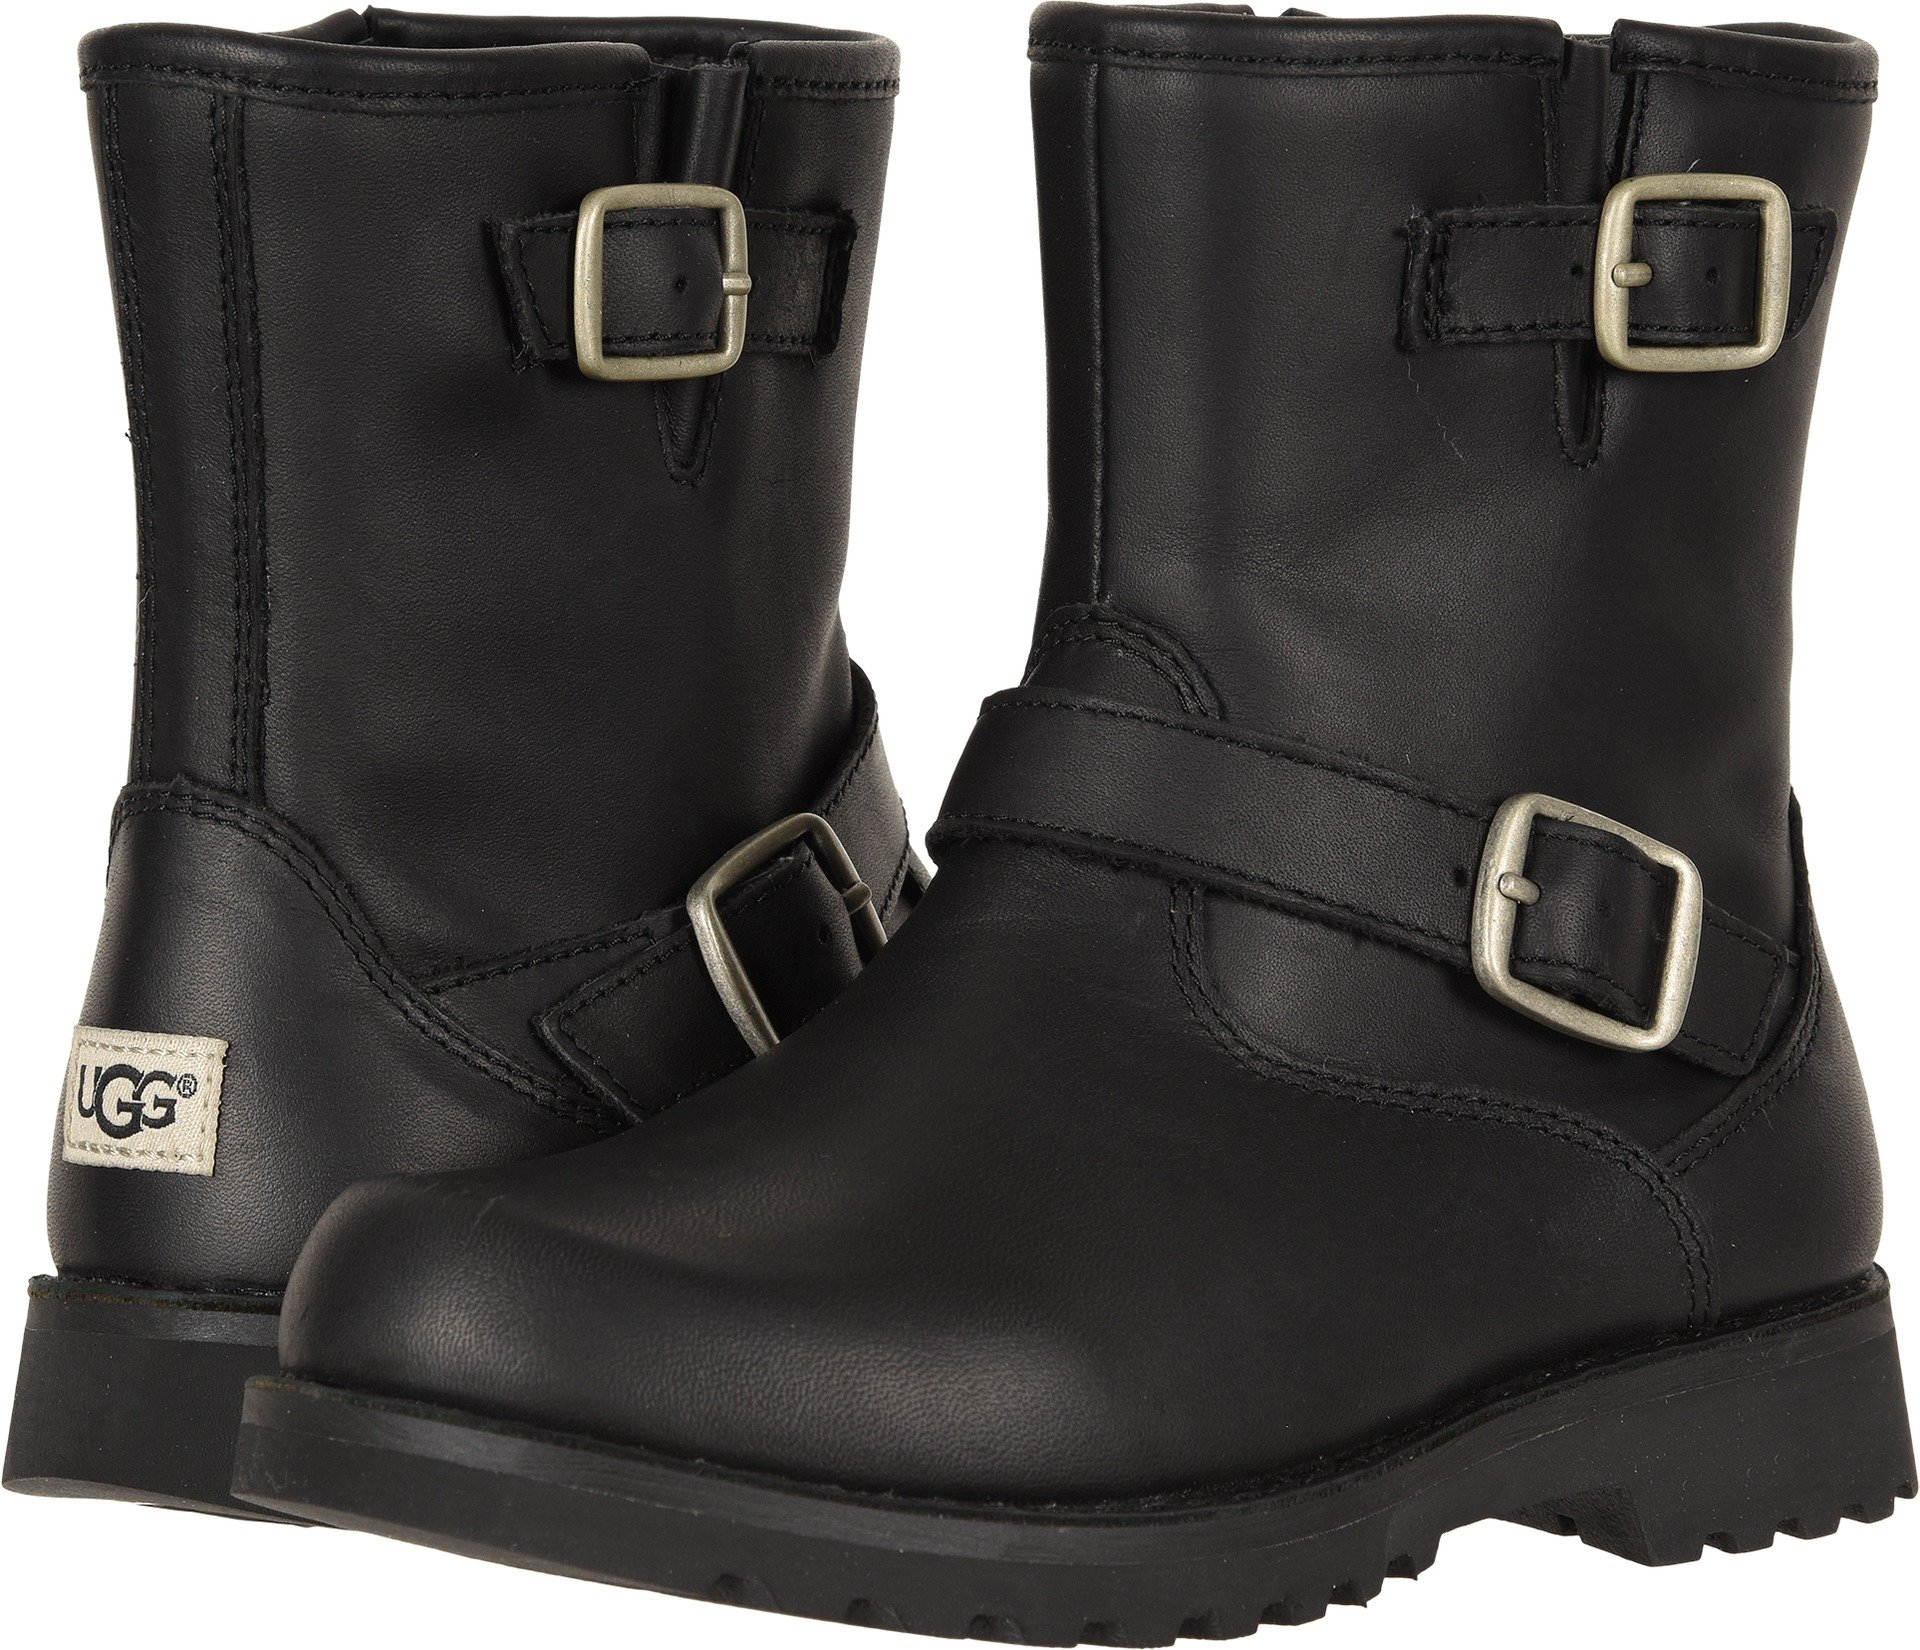 UGG Unisex-Kids K Harwell Motorcycle Boot, Black, 4 M US Big Kid